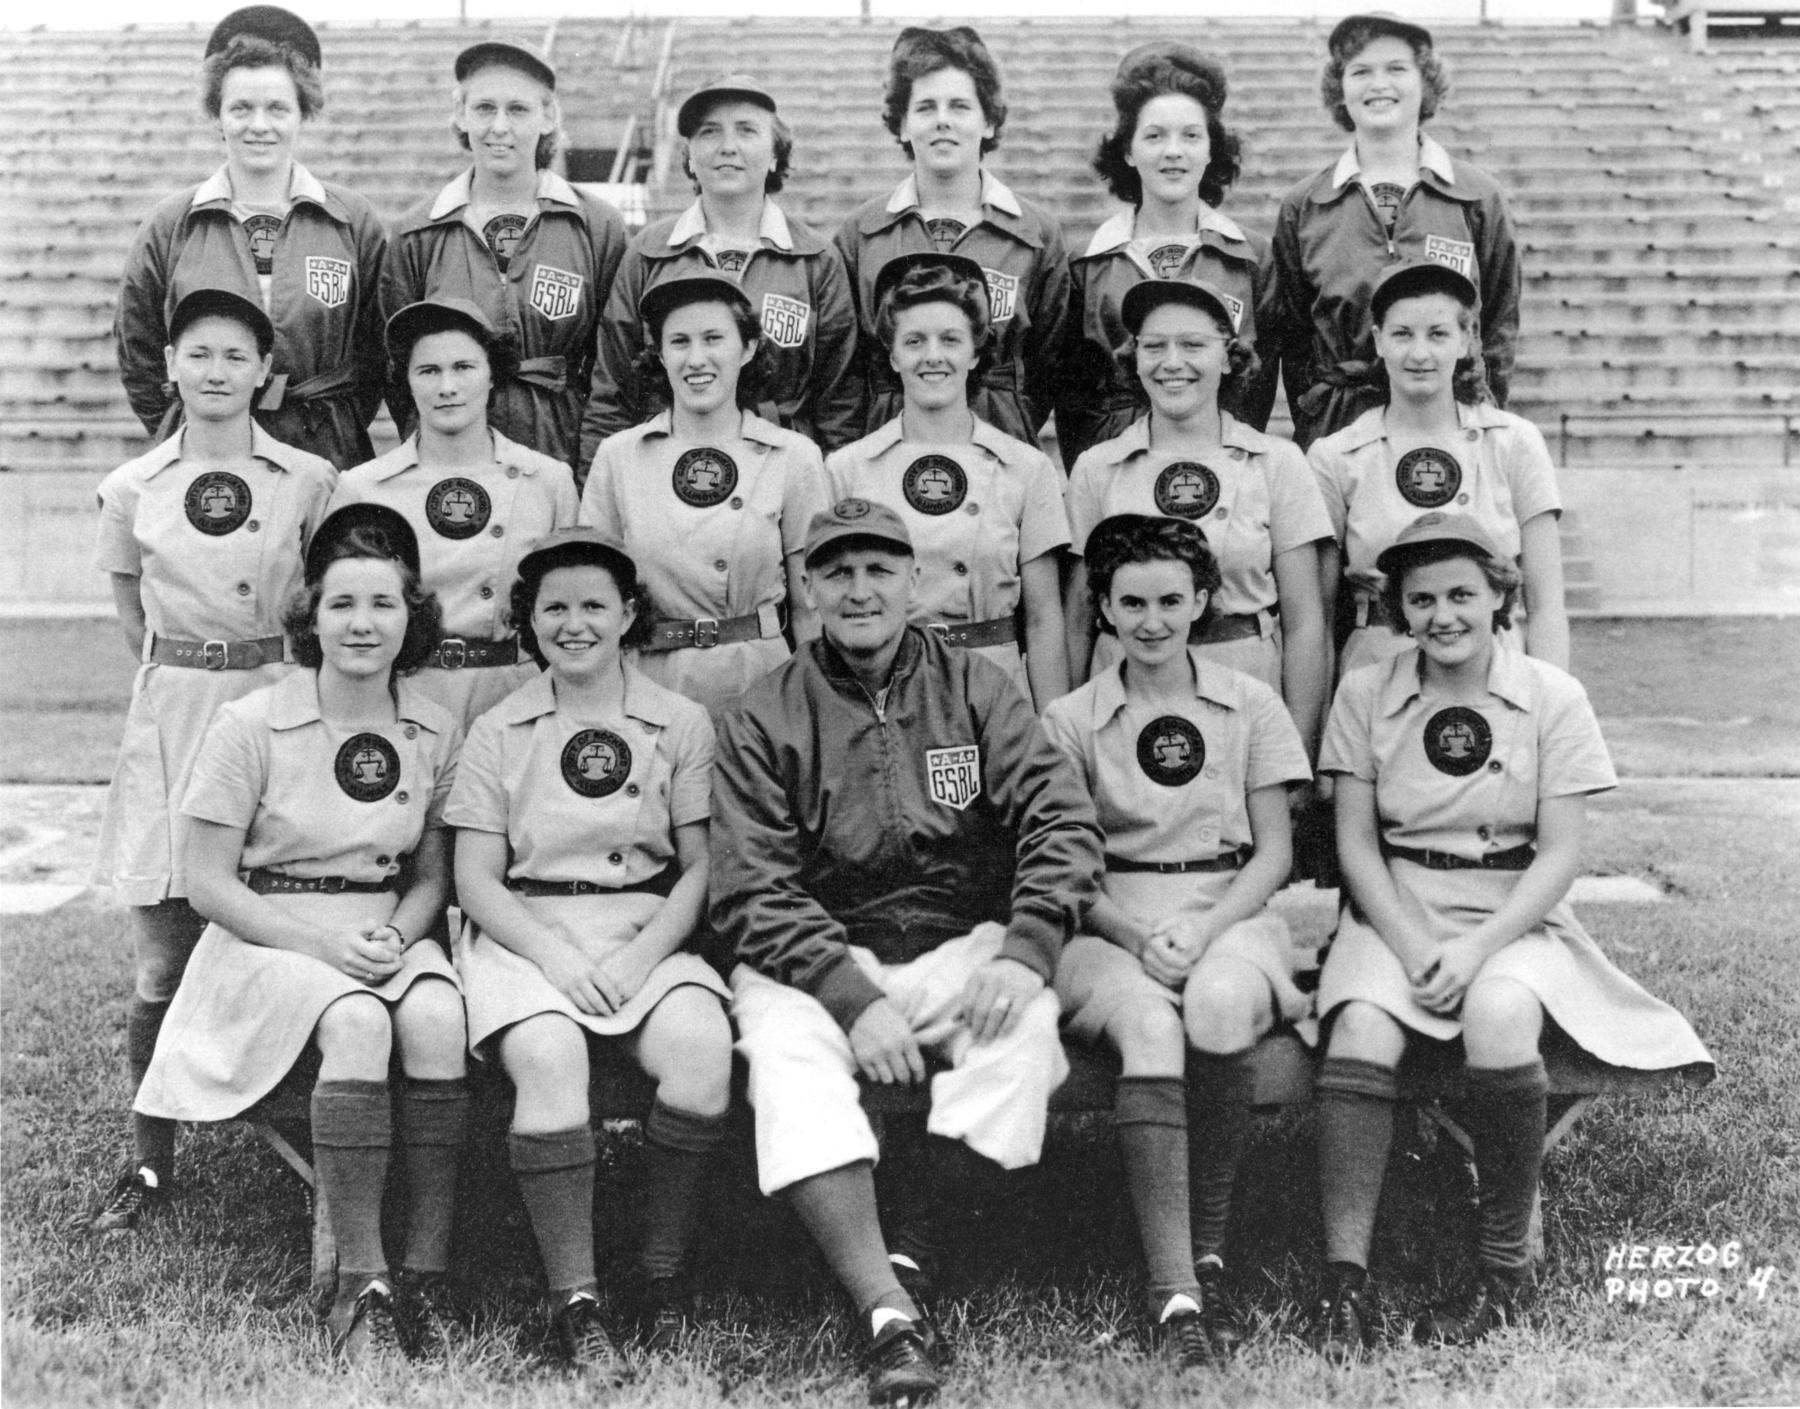 Rockford Peaches, 1943 - BL-9820-94  (National Baseball Hall of Fame Library)